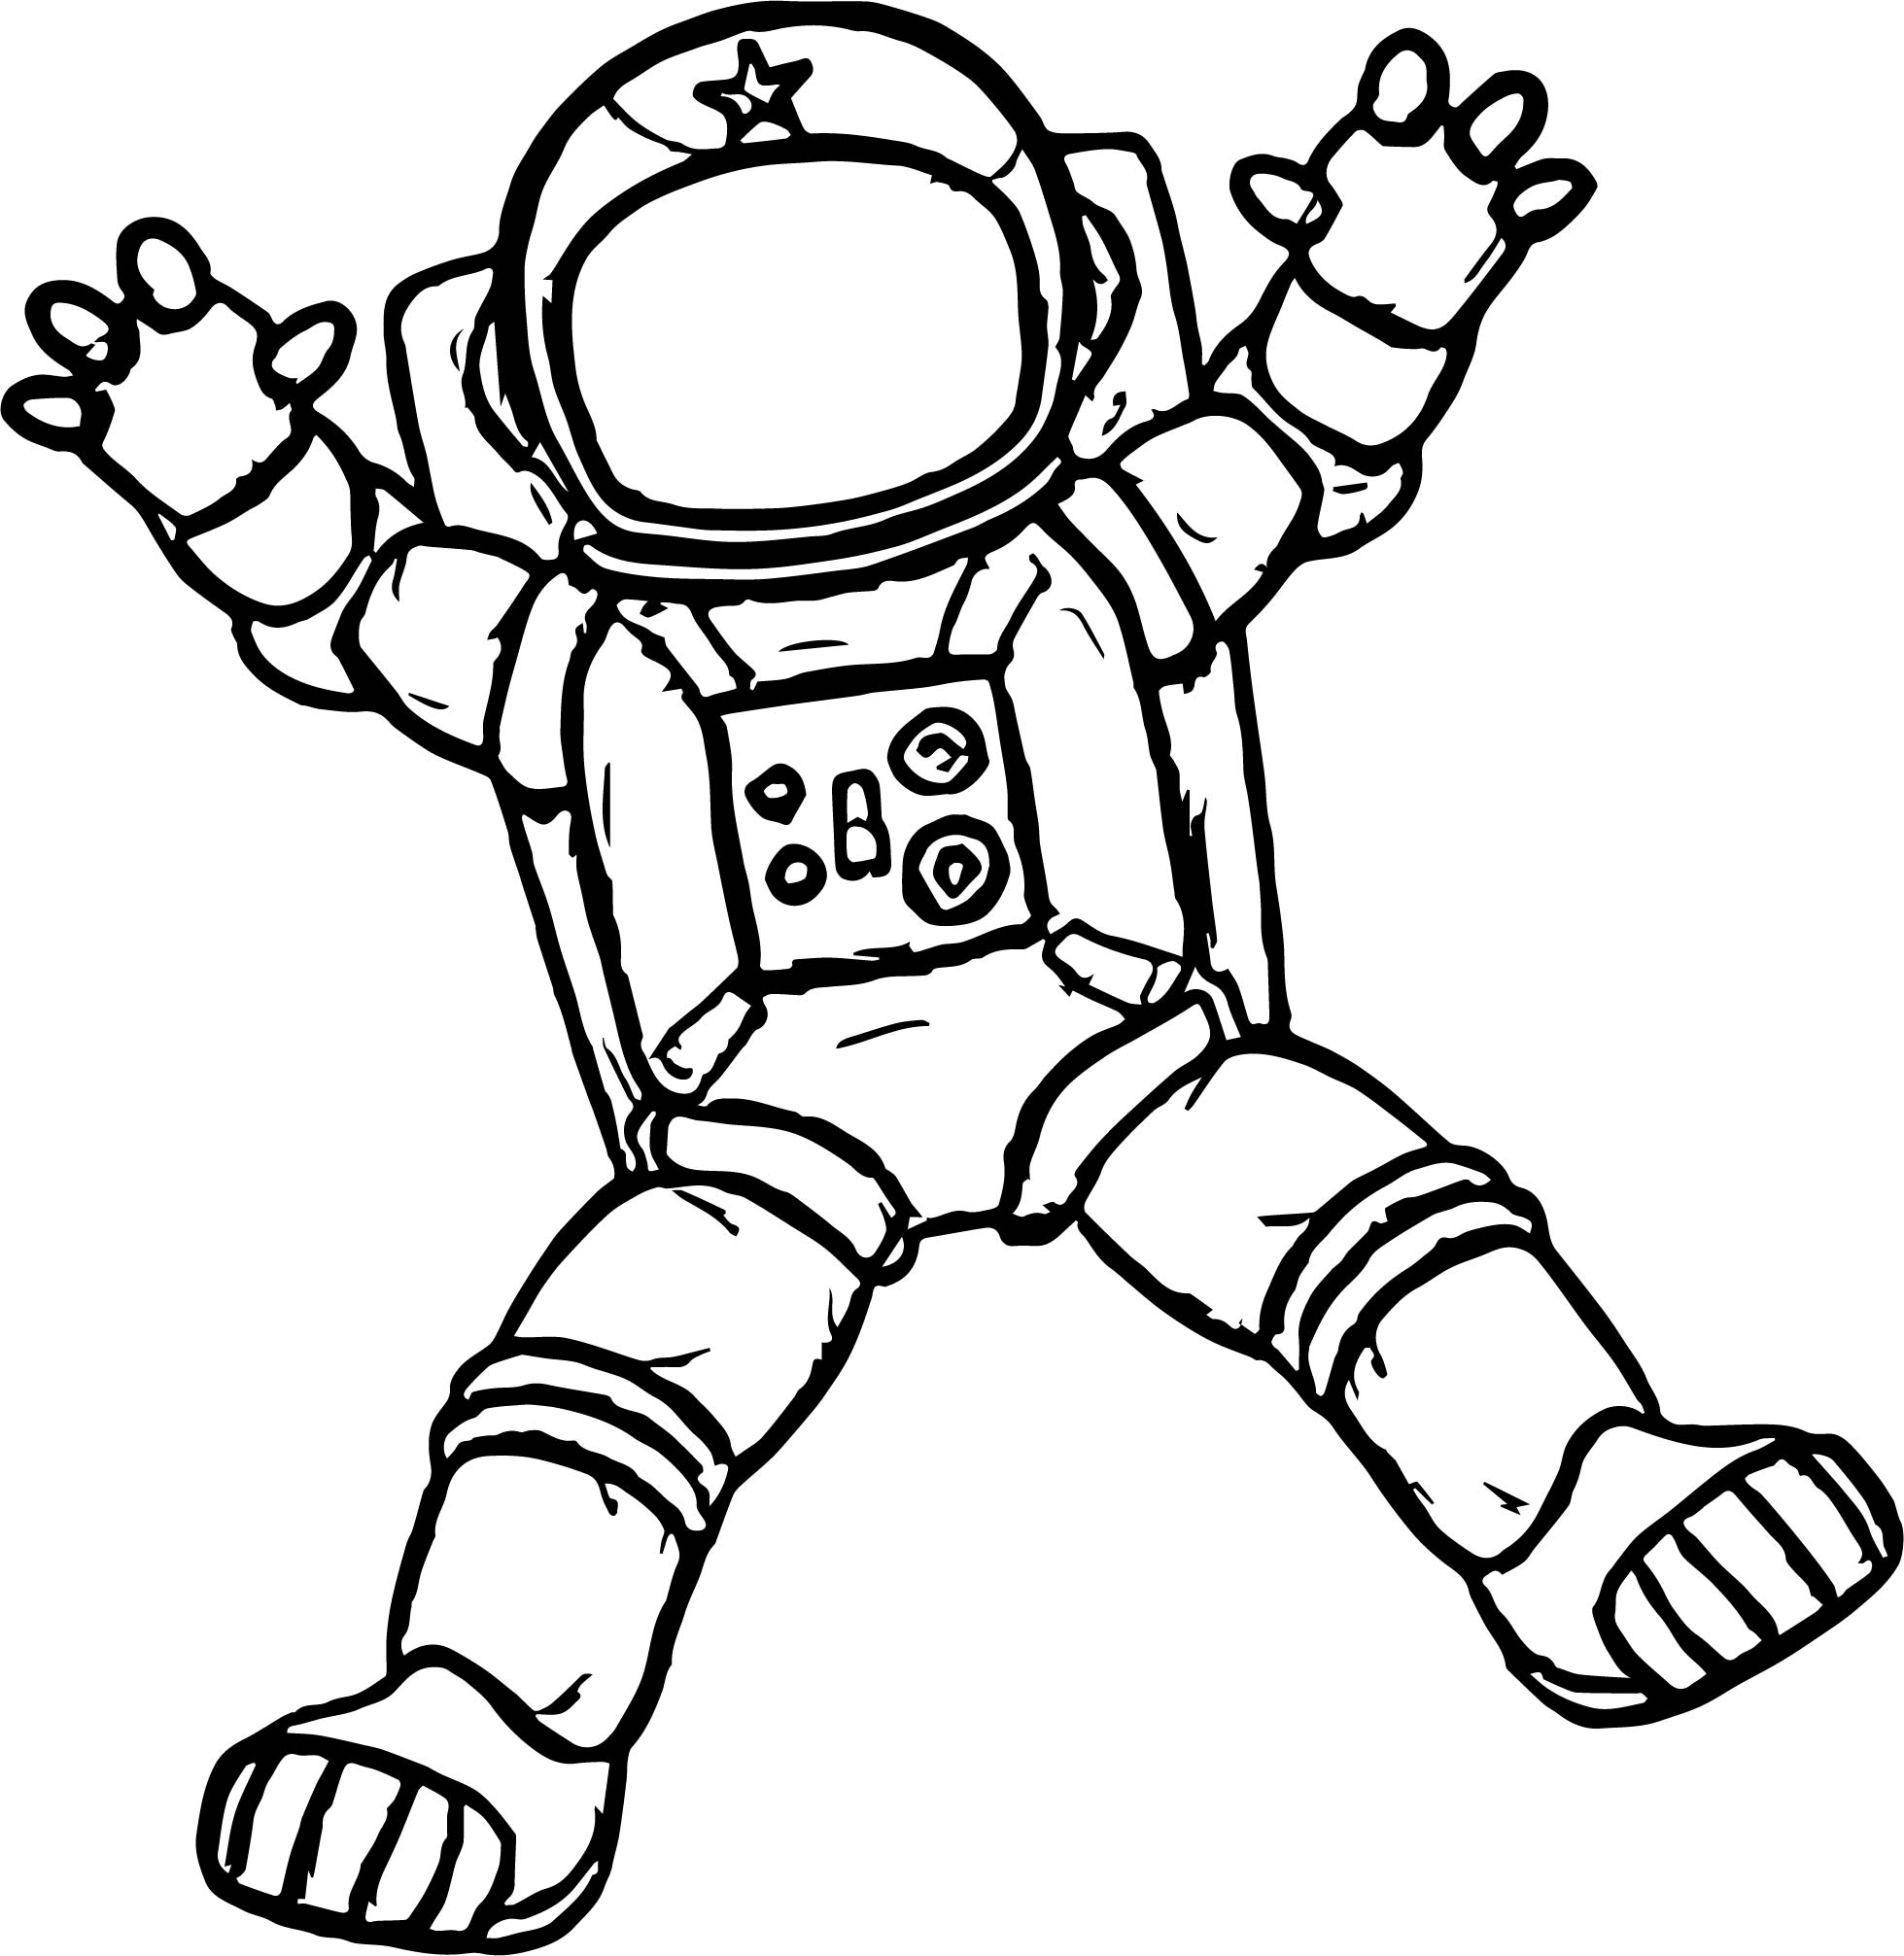 astronaut coloring for kids printable astronaut coloring pages for kids cool2bkids kids for coloring astronaut